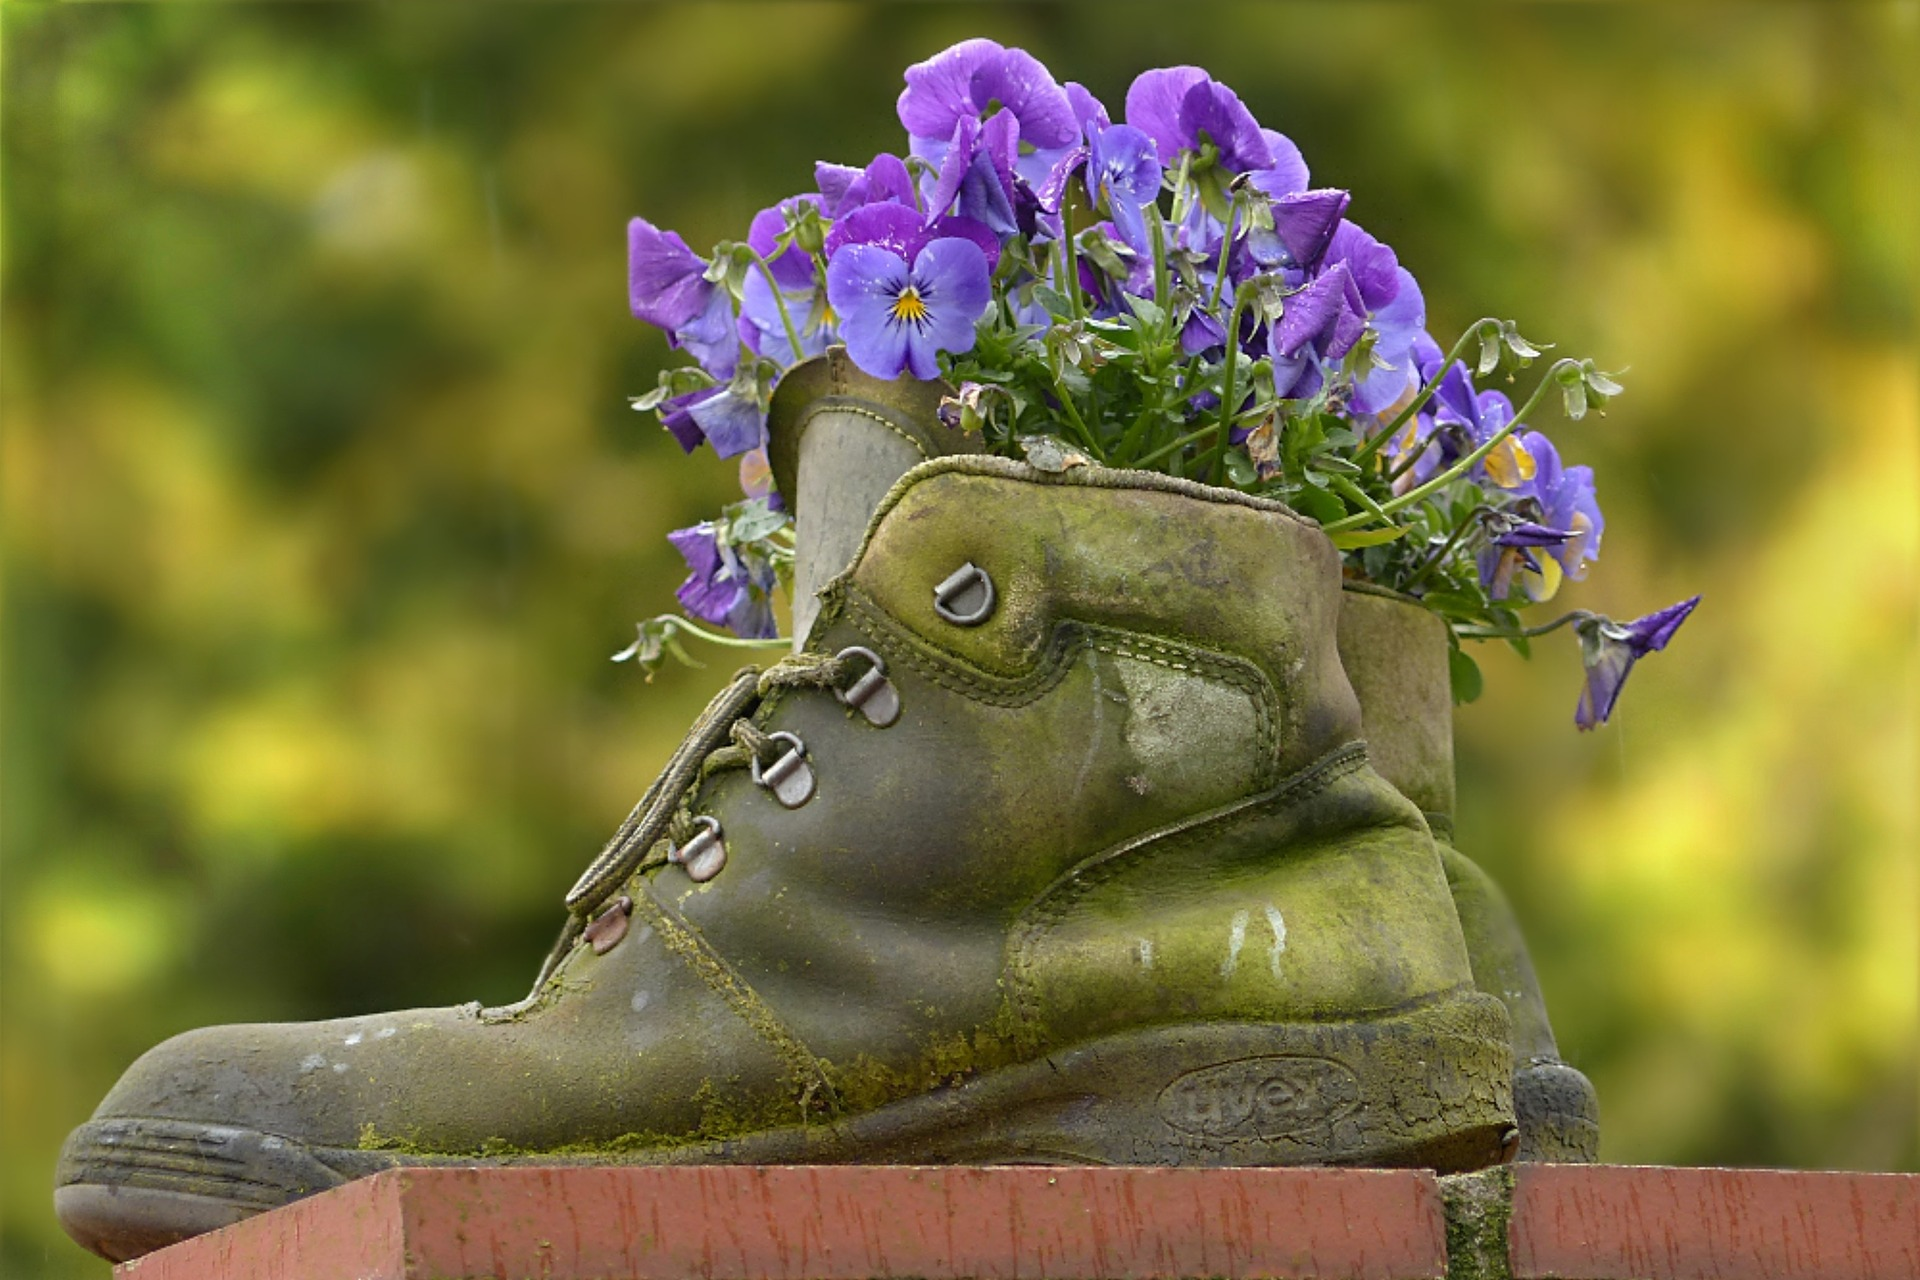 old shoes being used as vase